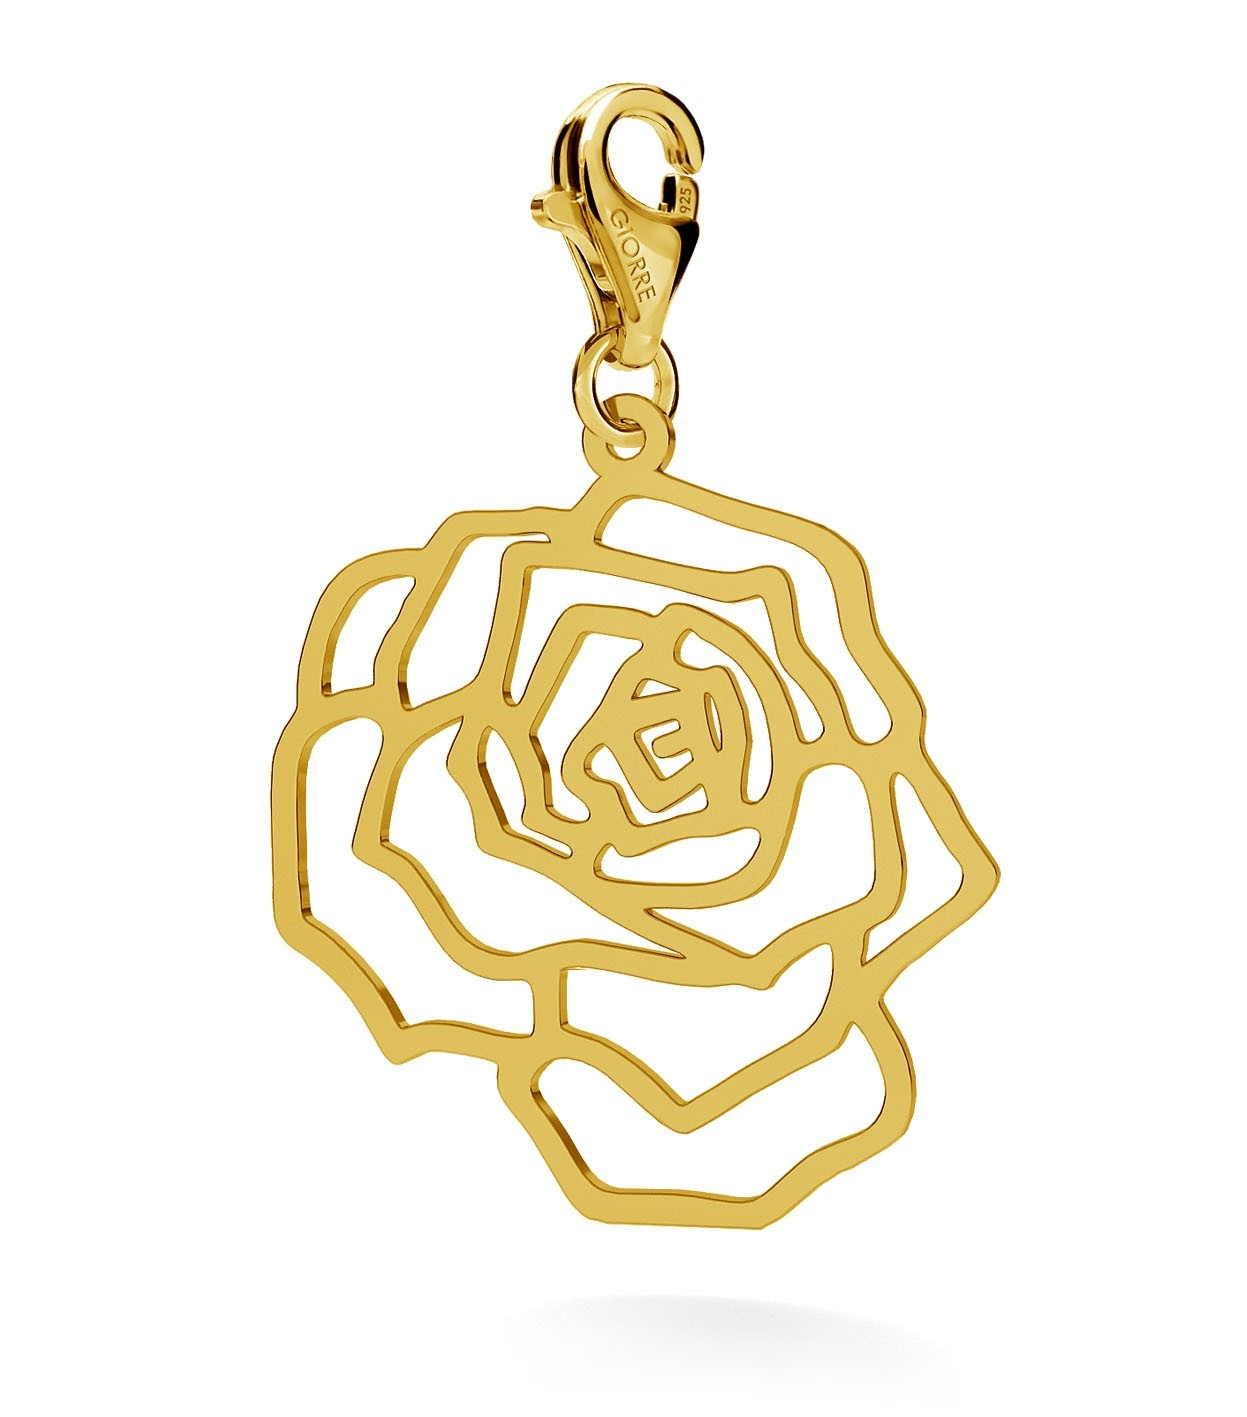 CHARM 111, ROSE, STERLING SILVER (925) RHODIUM OR GOLD PLATED